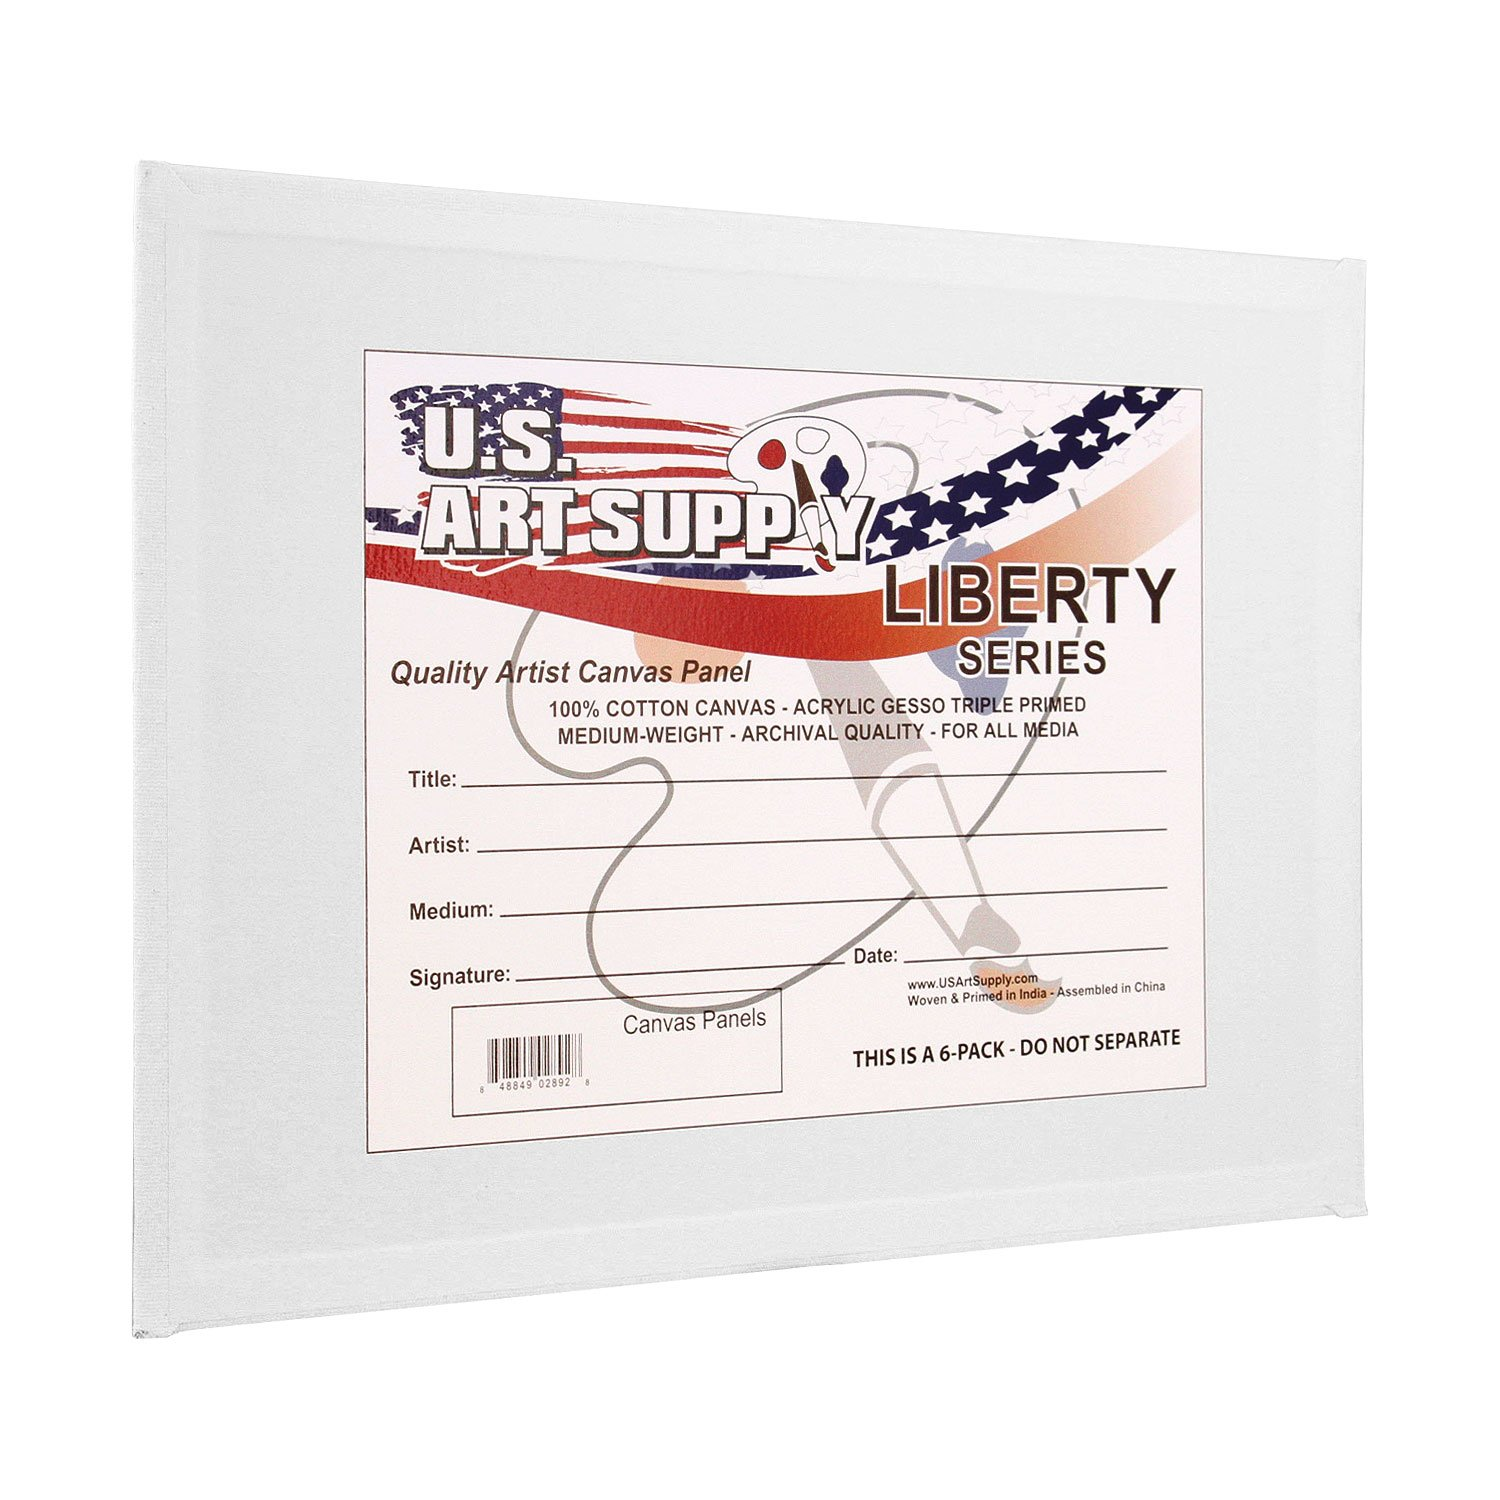 US Art Supply 11 X 14 inch Professional Artist Quality Acid Free Canvas Panels 12-Pack (1 Full Case of 12 Single Canvas Panels) by US Art Supply (Image #2)